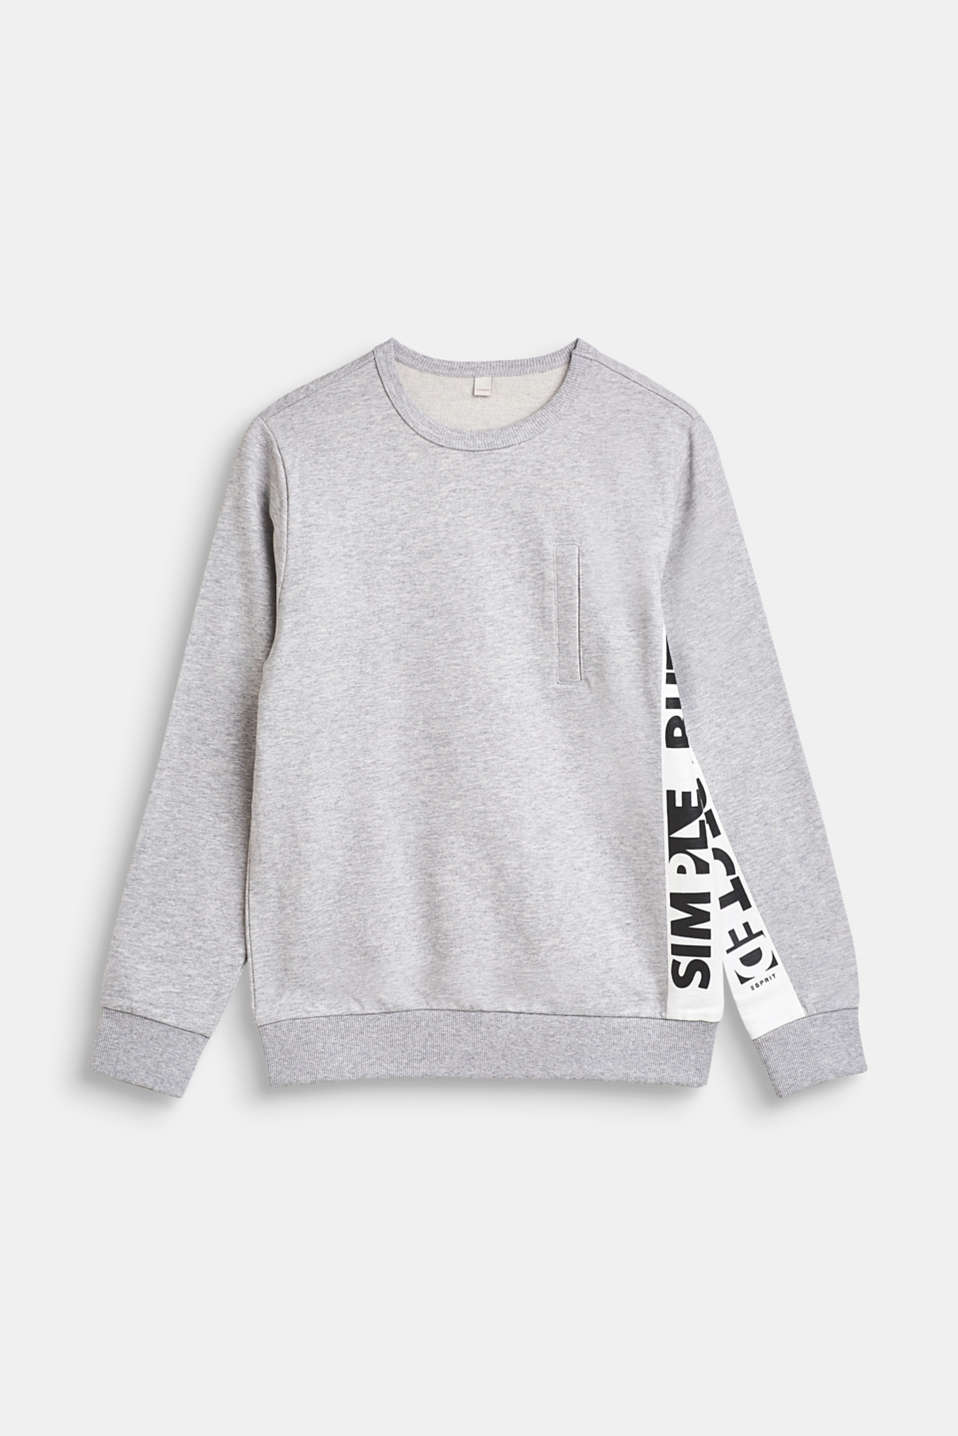 Esprit - Sweatshirt with printed lettering, 100% cotton